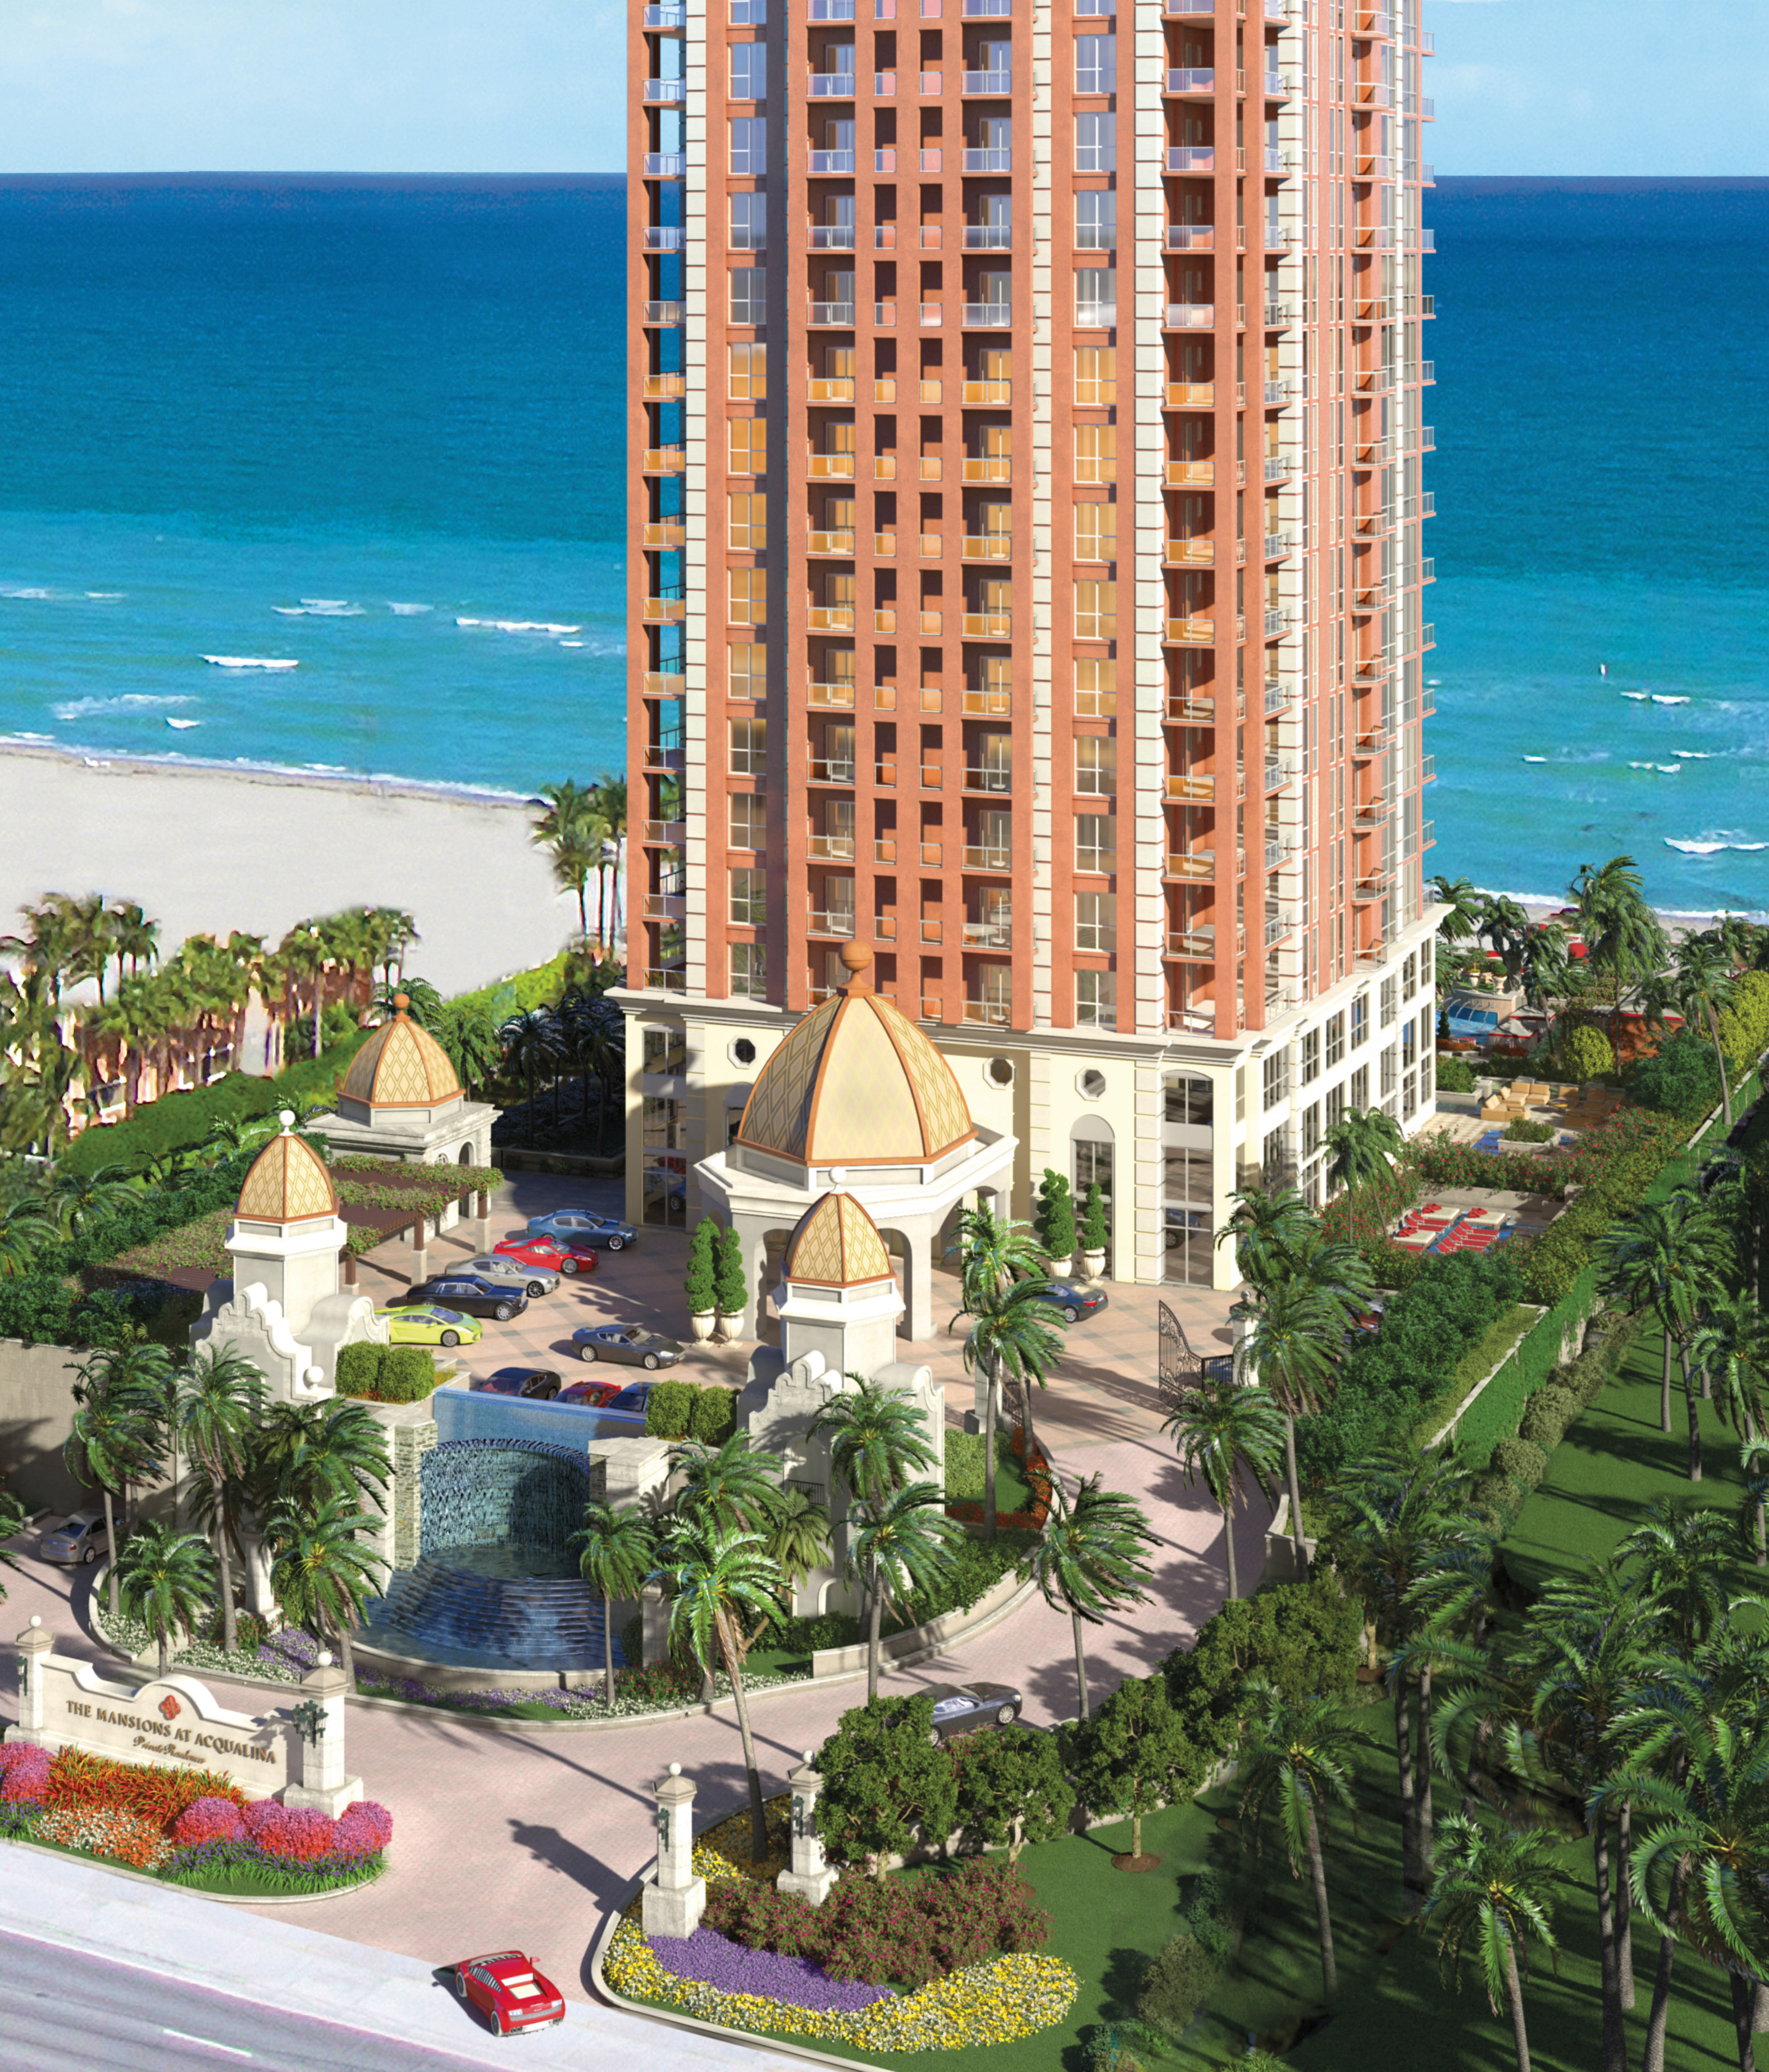 A view of Mansions at Acqualina in Sunny Isles Beach with the ocean in the background